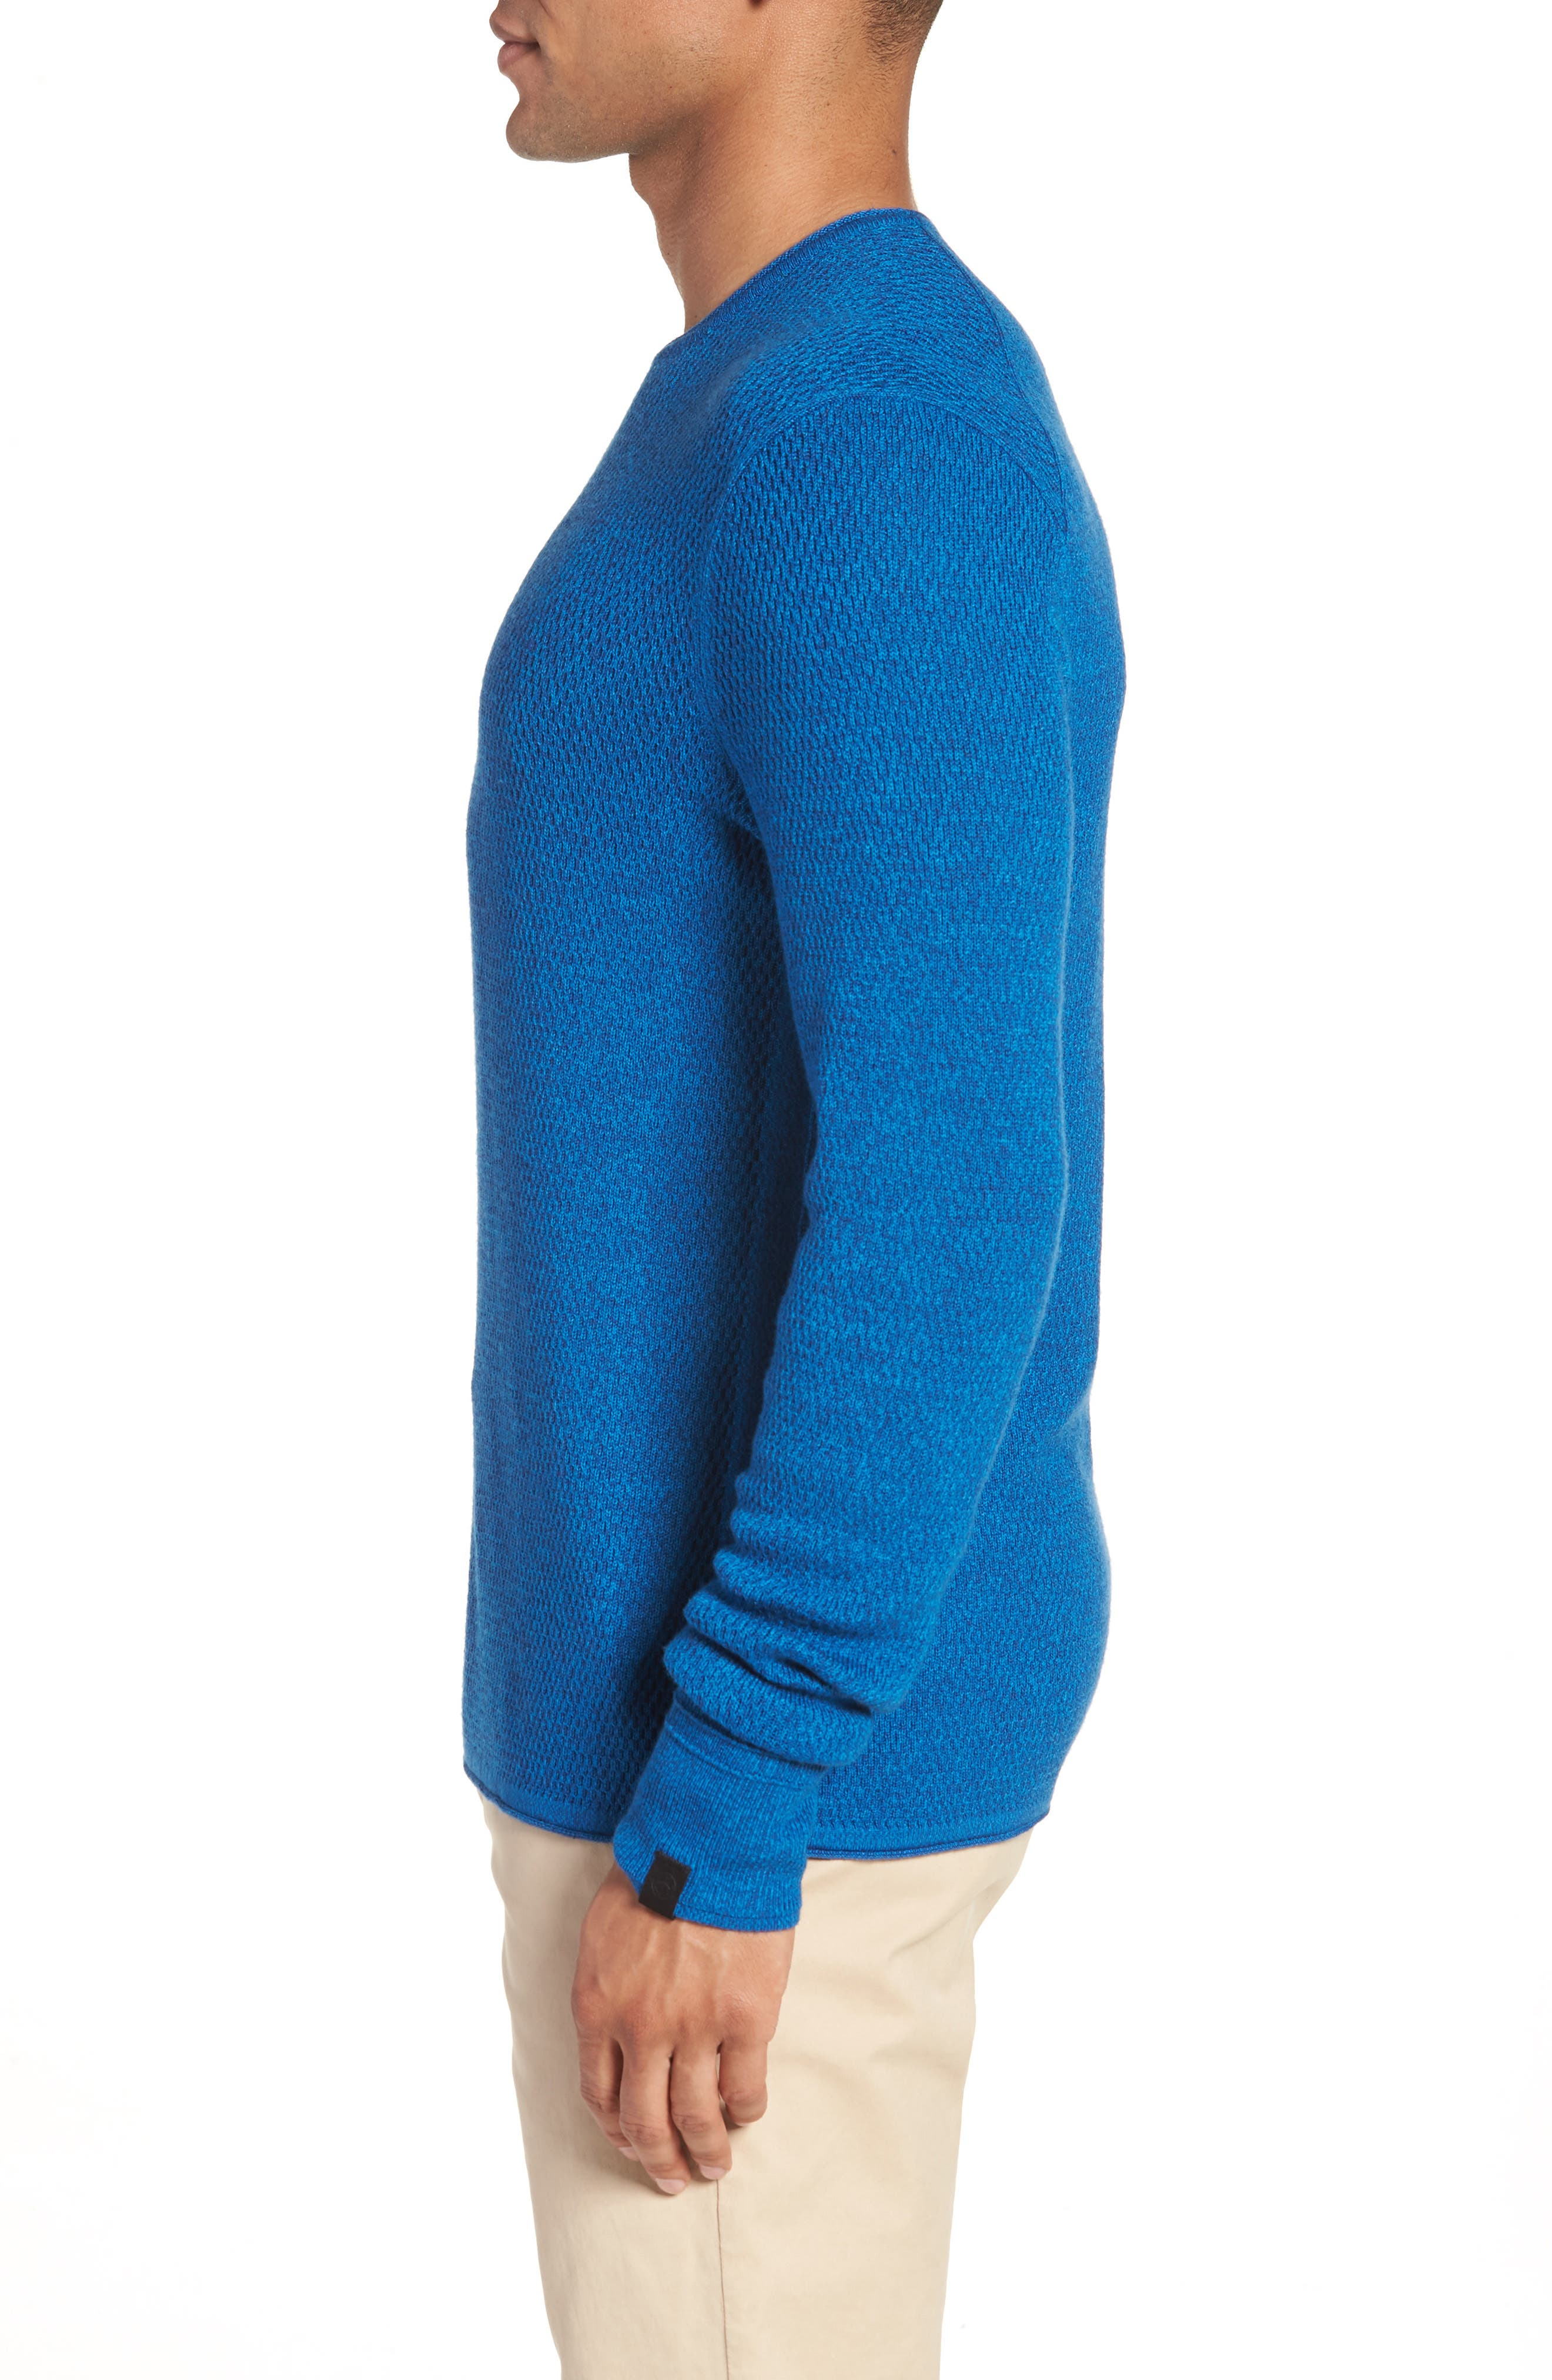 Gregory Wool Blend Crewneck Sweater,                             Alternate thumbnail 3, color,                             Bright Blue